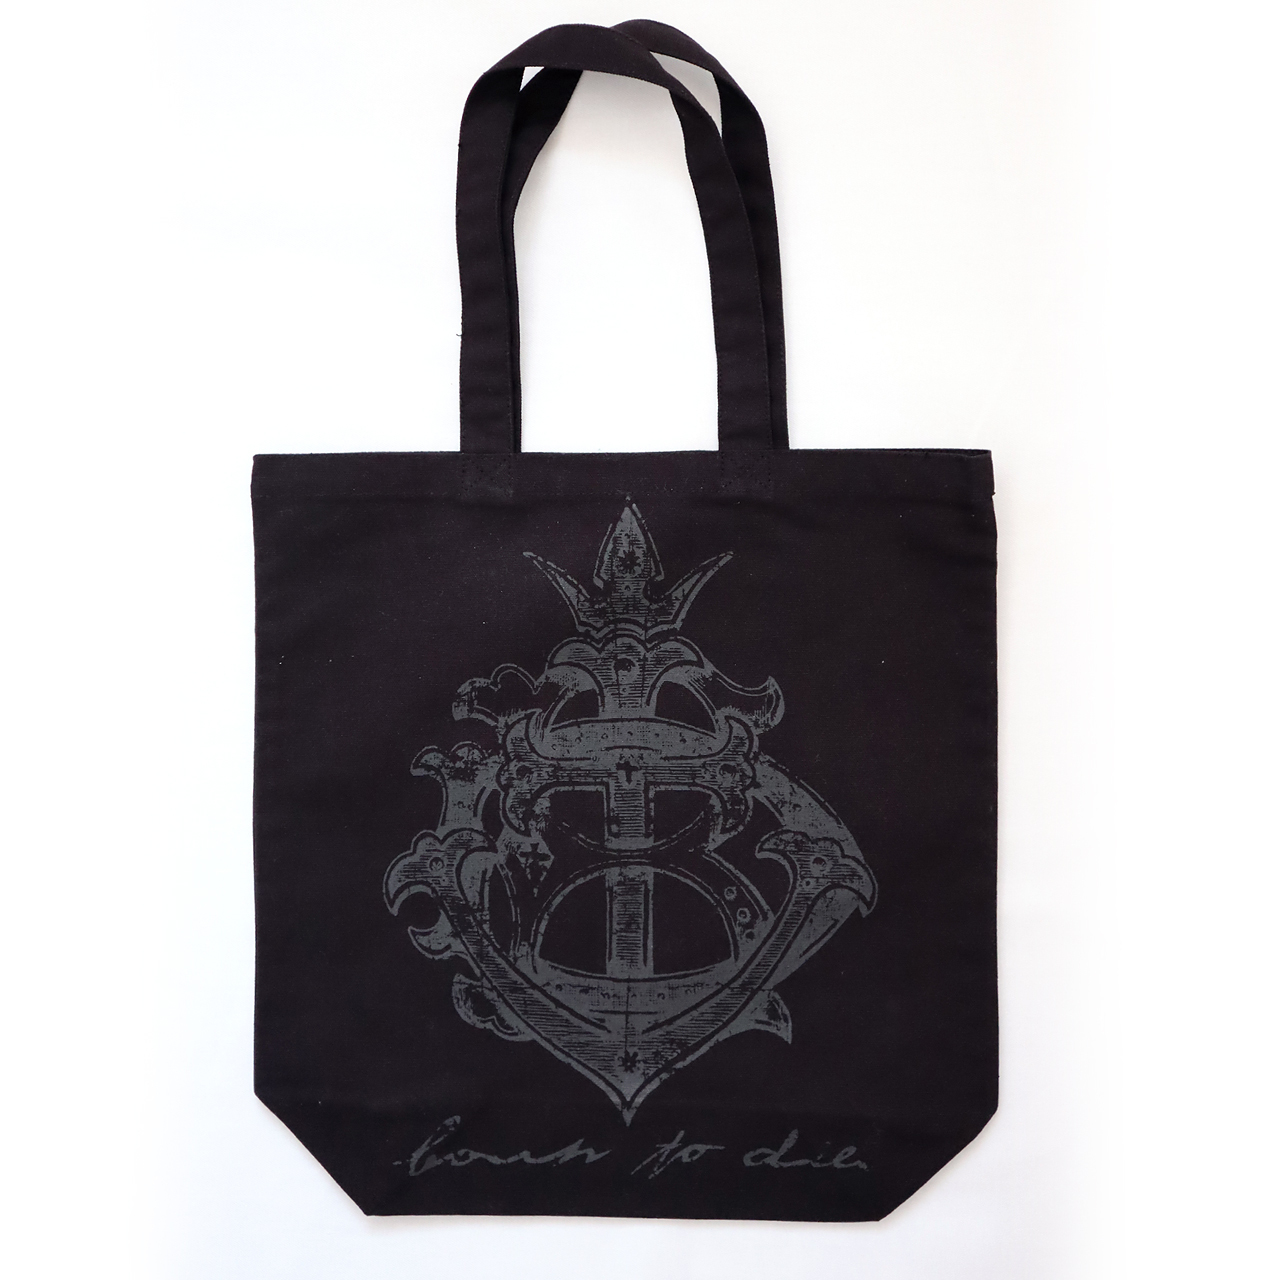 トートBAG:『Anchor』DieodeDesign - 画像1